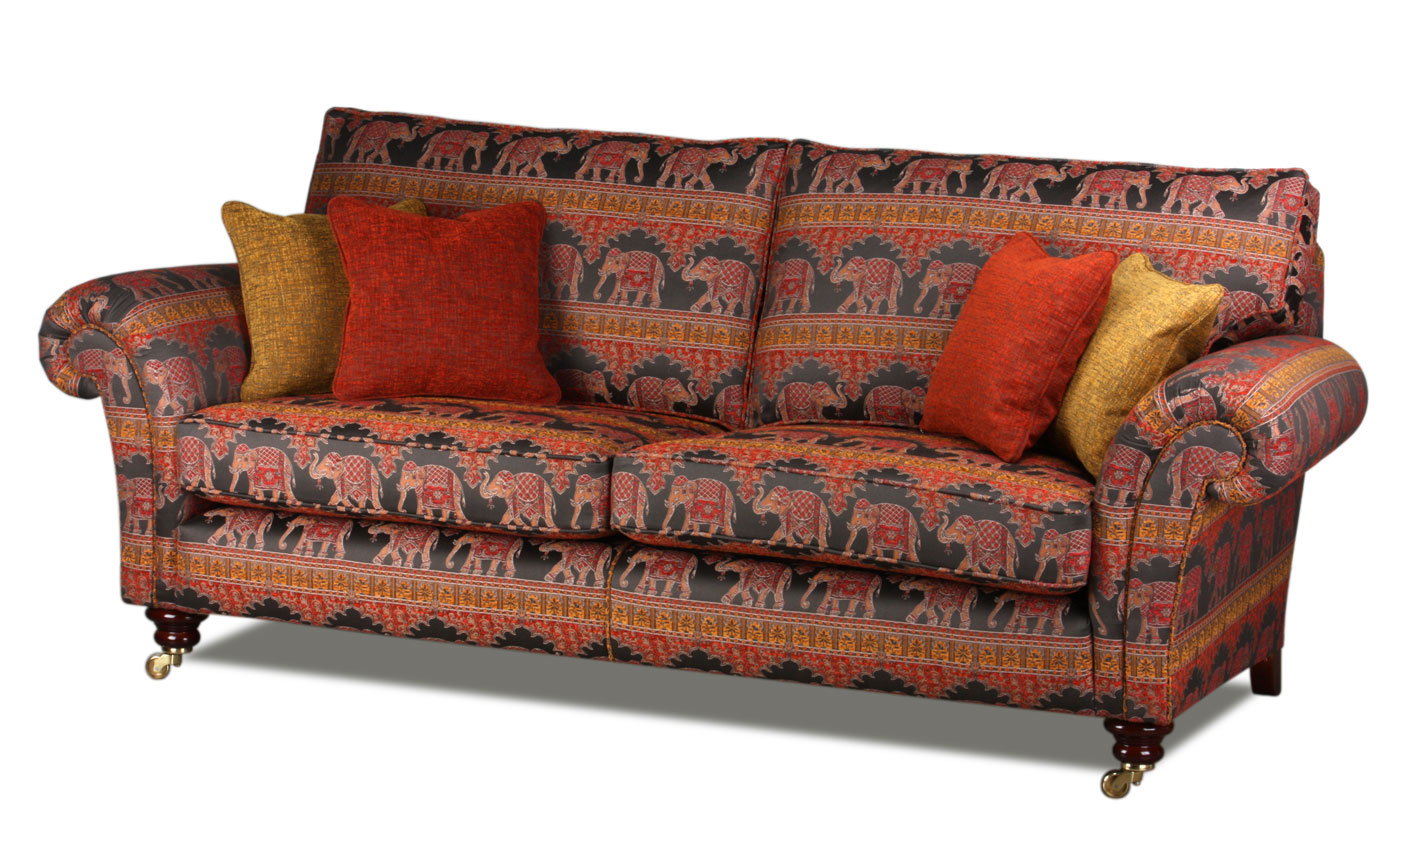 Englisches landhausstil sofa baxter for Sofa landhausstil